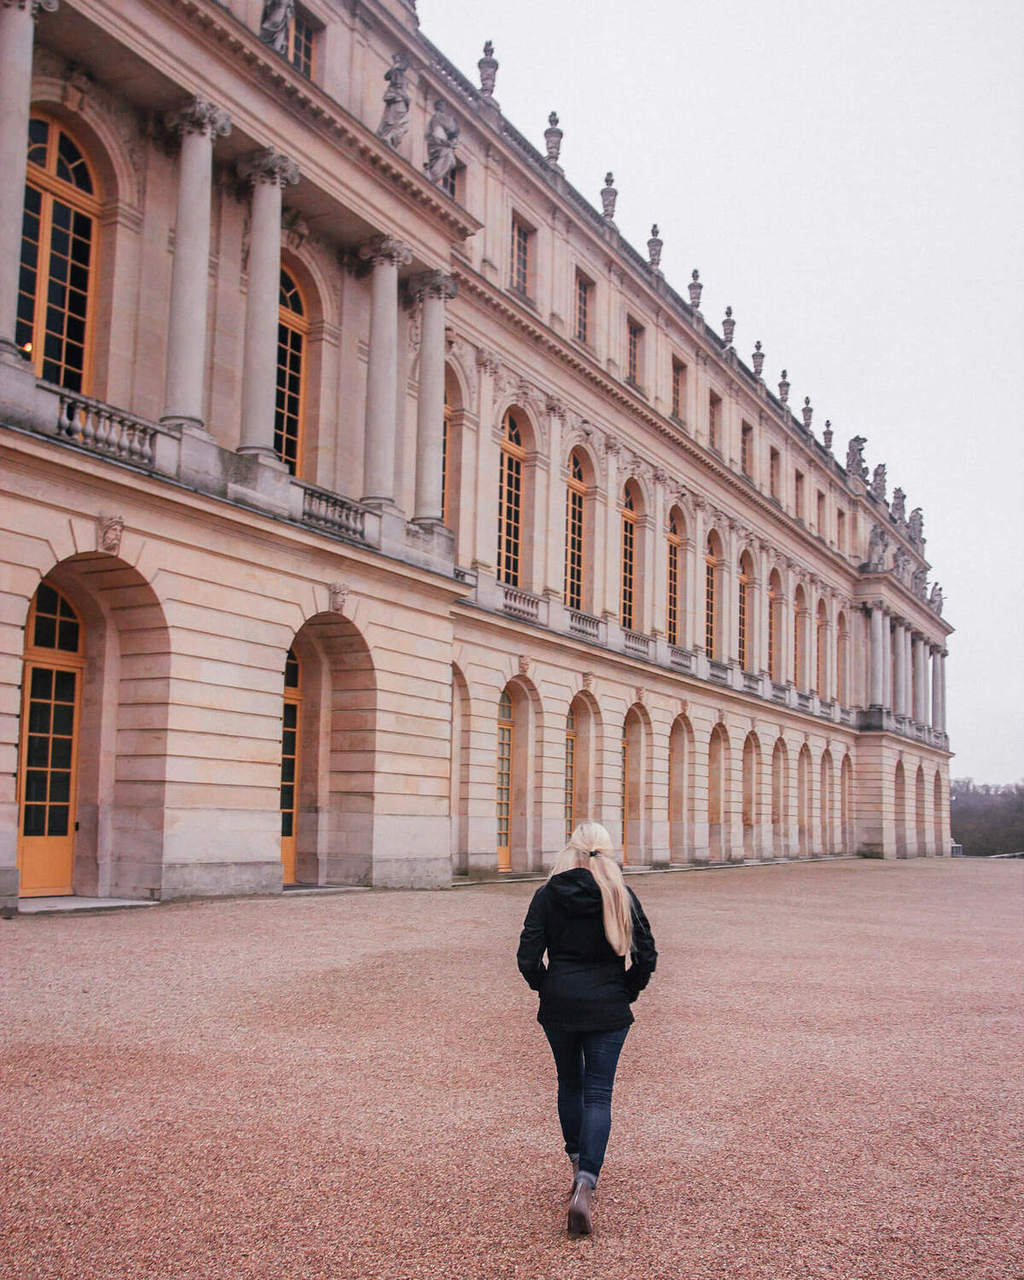 The gardens at Versailles in winter. Get travel tips for Paris in winter in this guide to Paris at New Year's.